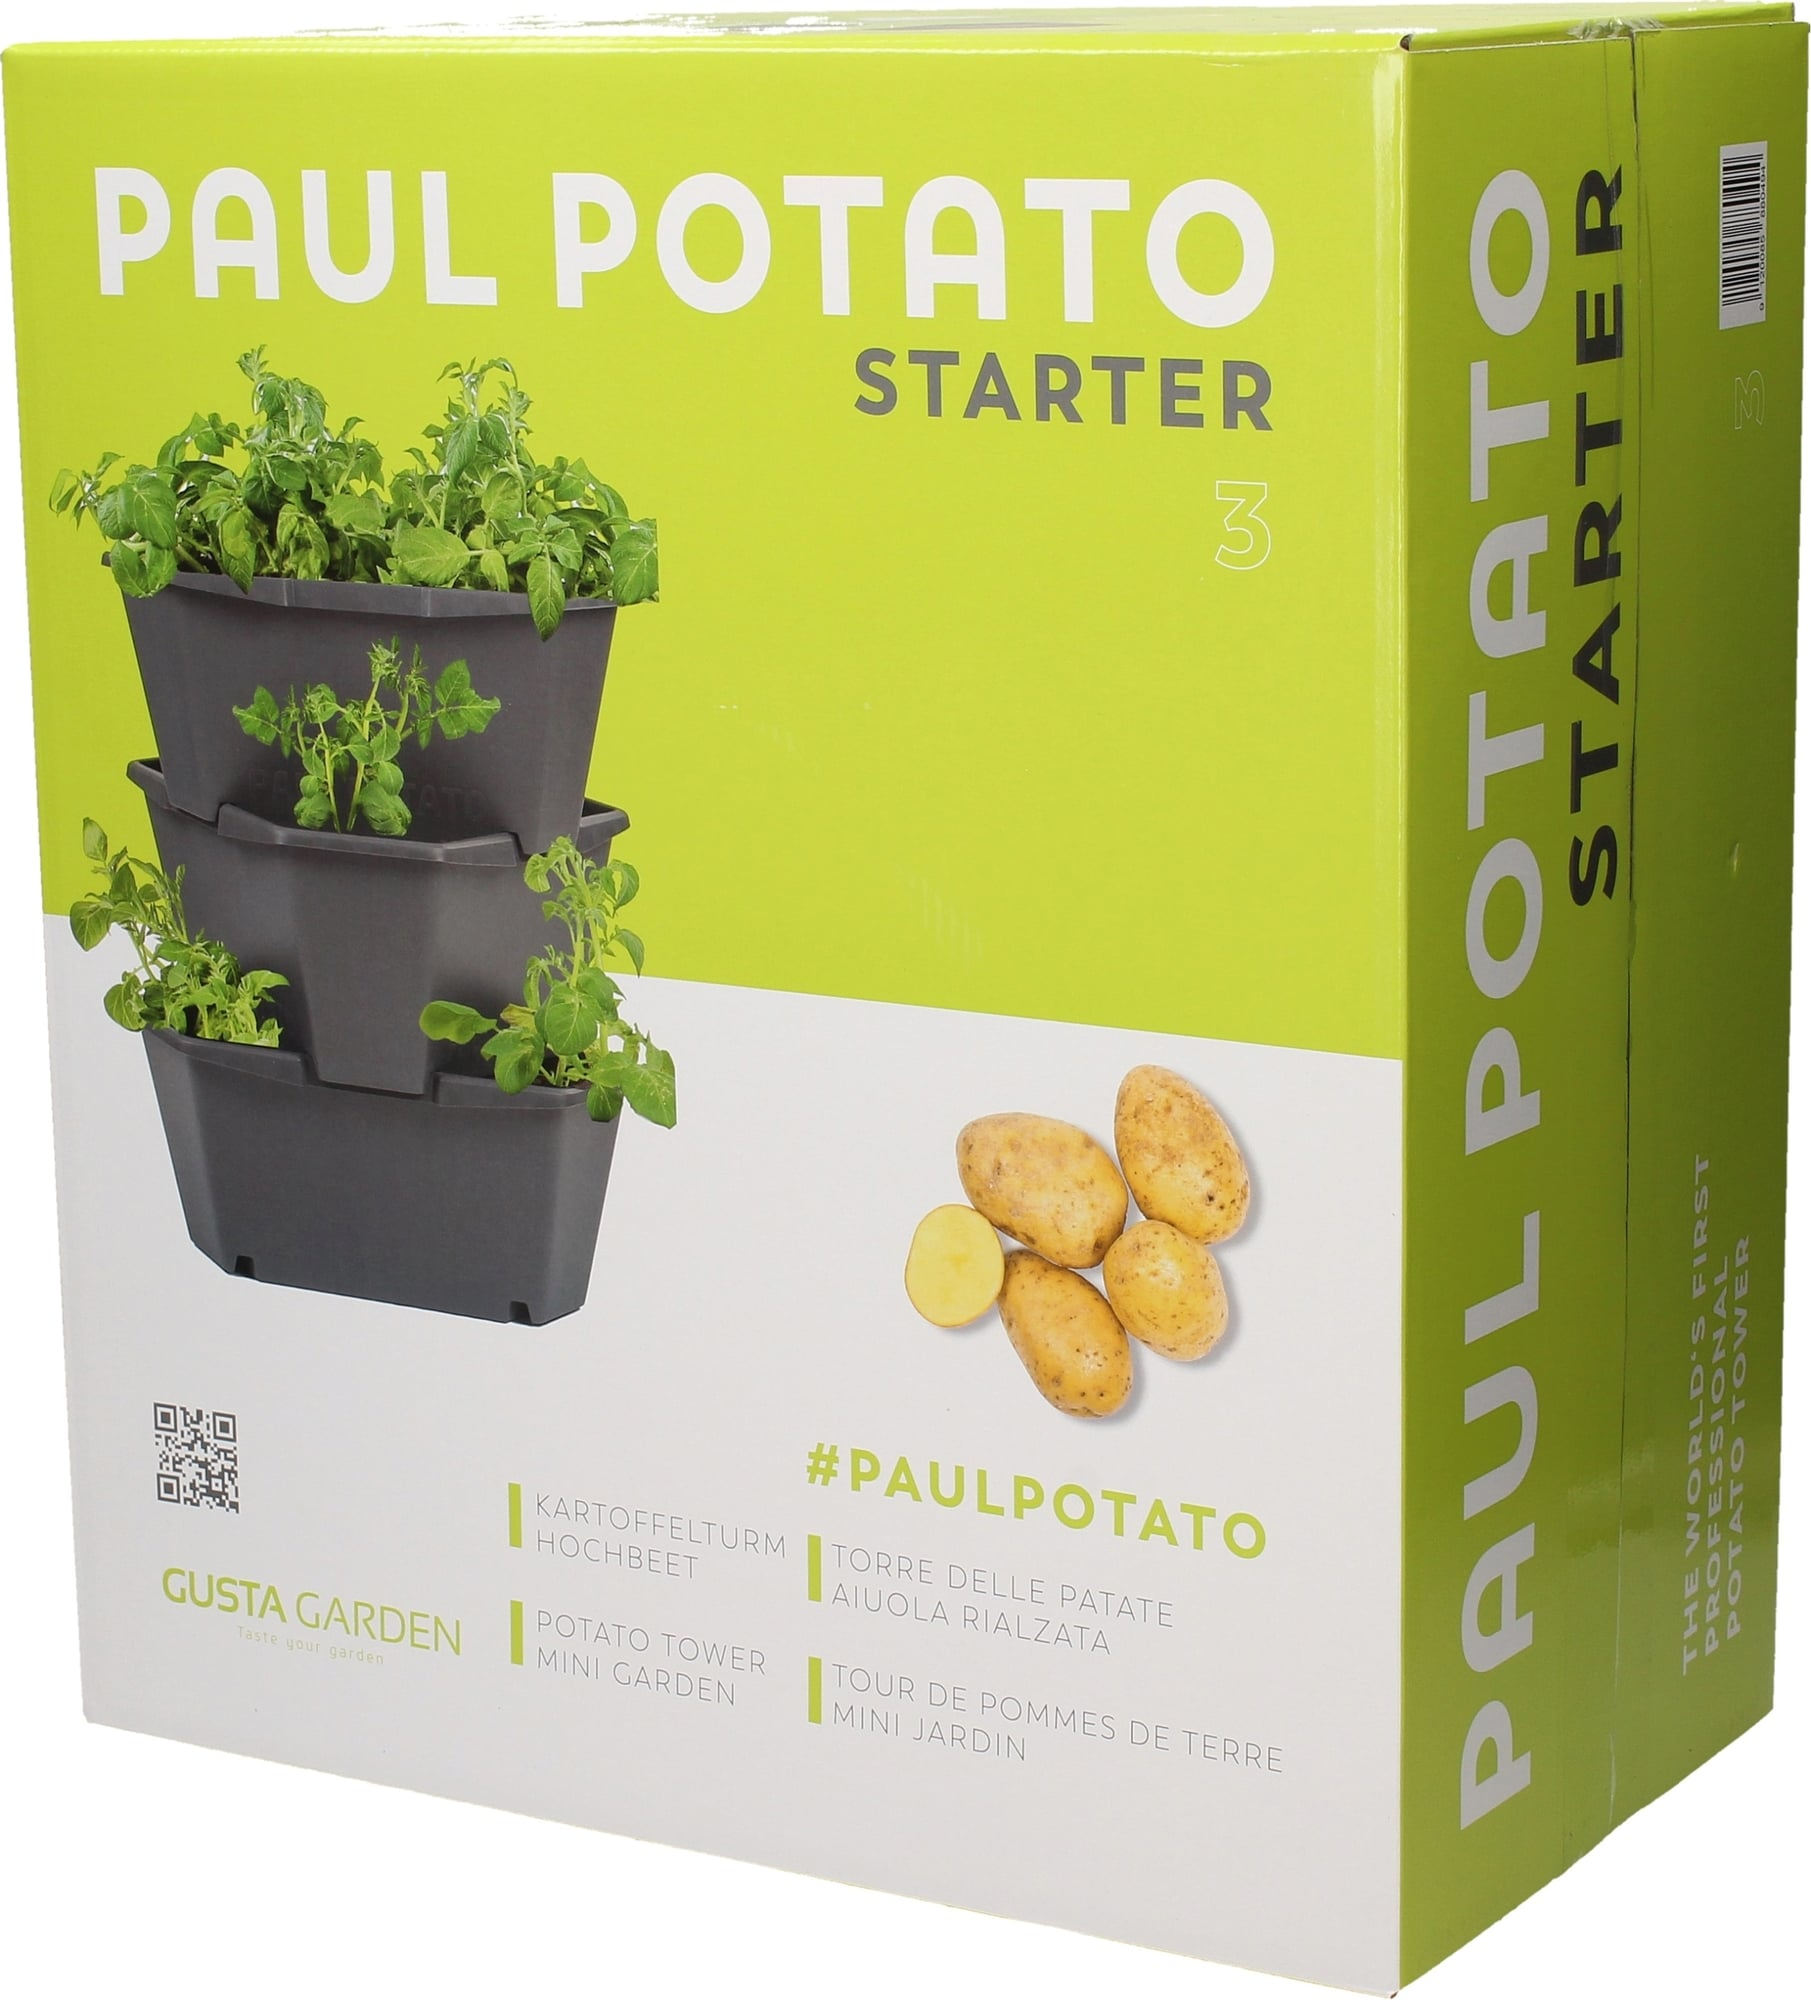 Full Size of Gusta Garden Paul Potato Starter 3 Etagen From Austria Wohnzimmer Paul Potato Kartoffelturm Erfahrungen